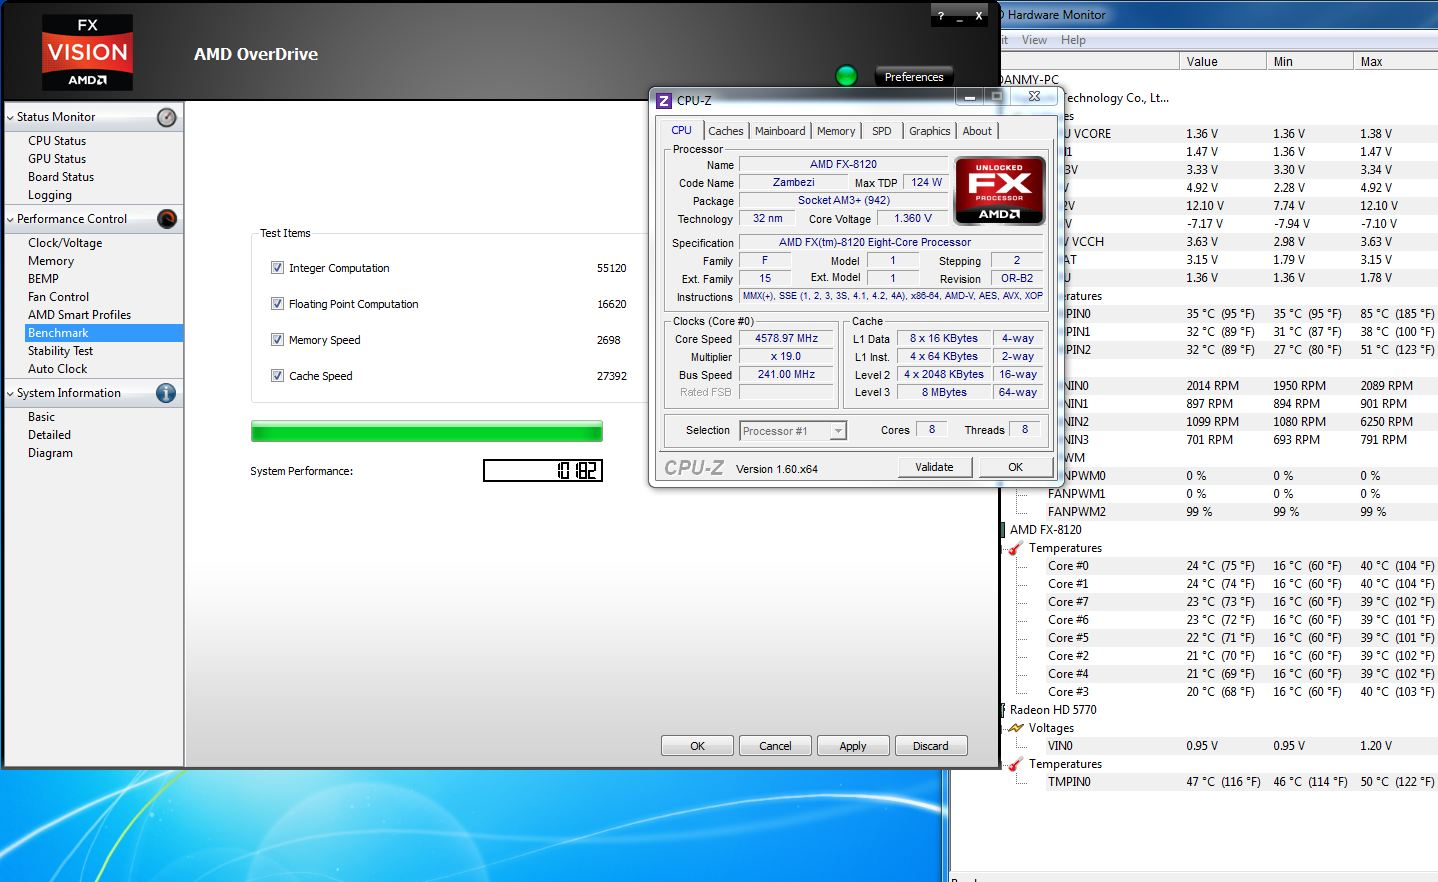 AMD Overdrive Scores - Page 4 - Overclock net - An